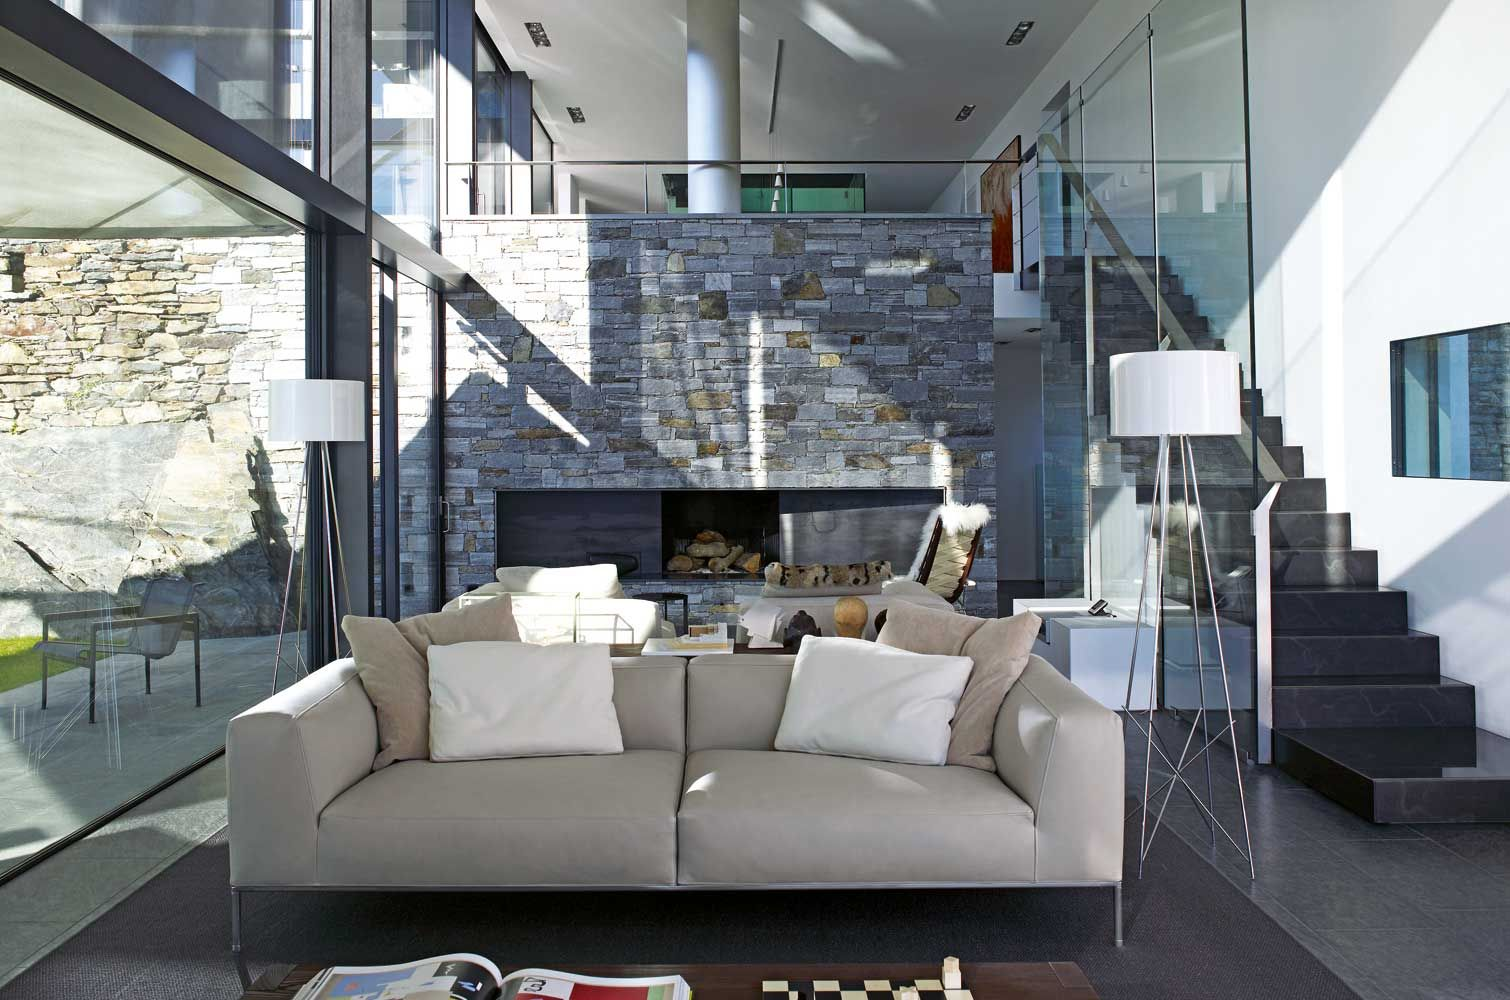 Modern living room with fireplace staircase and glass divider